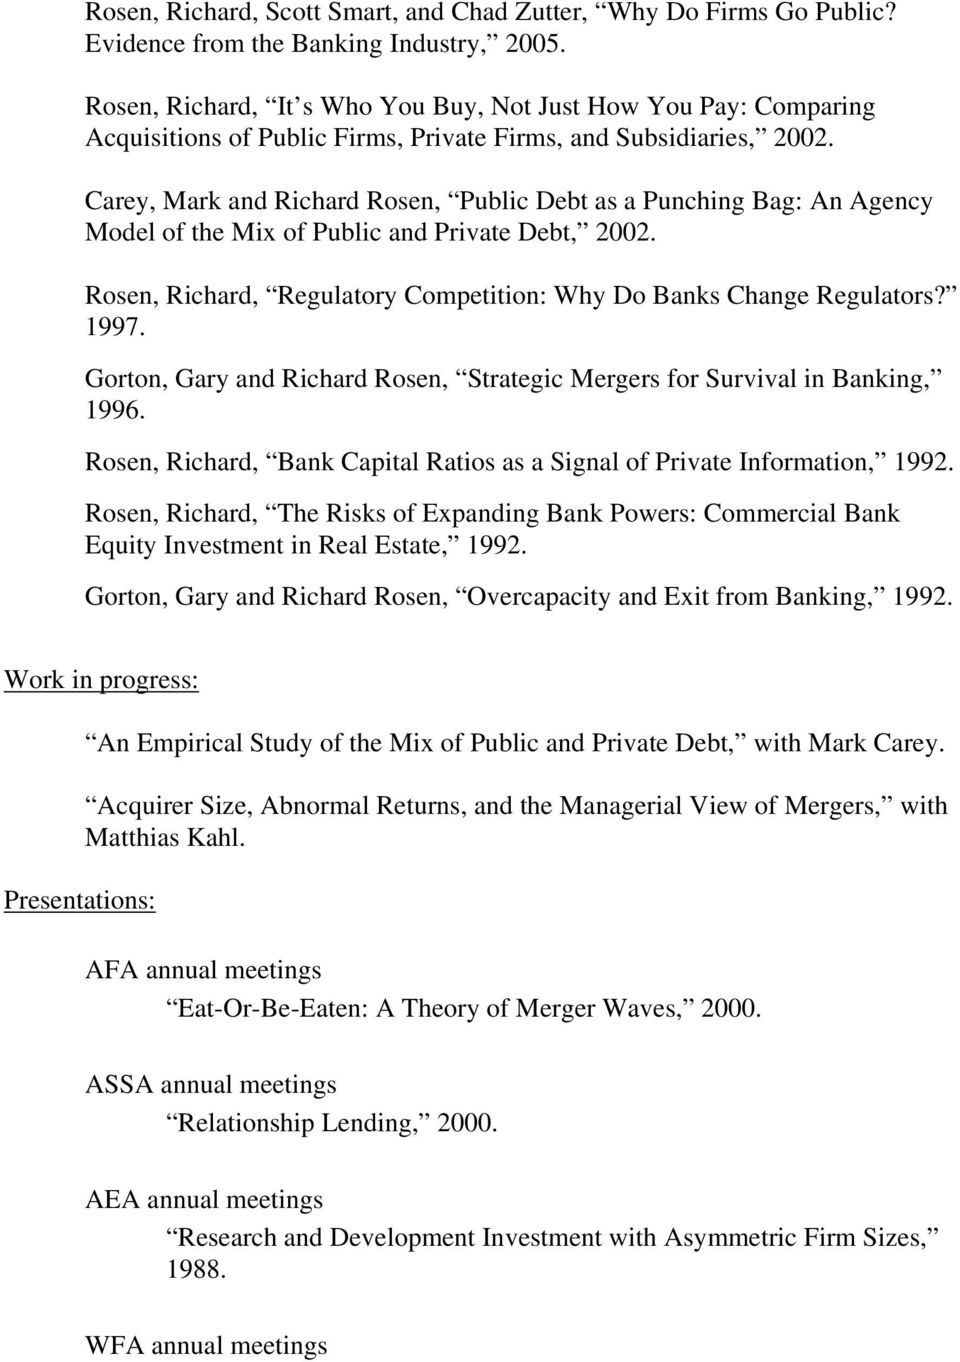 Carey, Mark and Richard Rosen, Public Debt as a Punching Bag: An Agency Model of the Mix of Public and Private Debt, 2002. Rosen, Richard, Regulatory Competition: Why Do Banks Change Regulators? 1997.